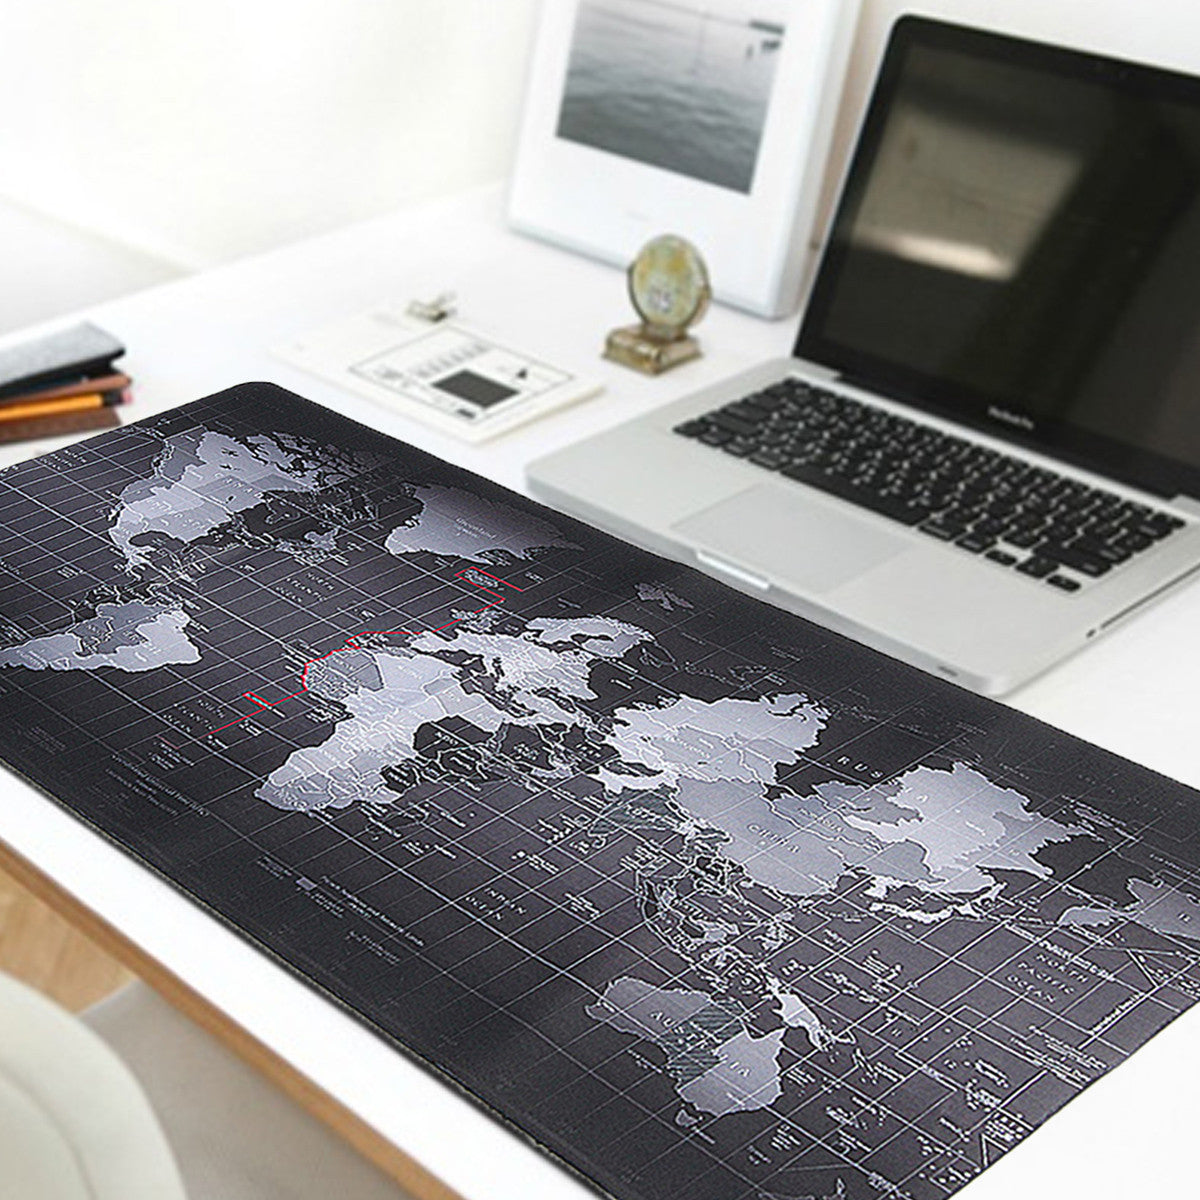 The gigantic command center mouse mat famazing deals gigantic world map mouse mat 2018 top gift famazing deals gumiabroncs Image collections